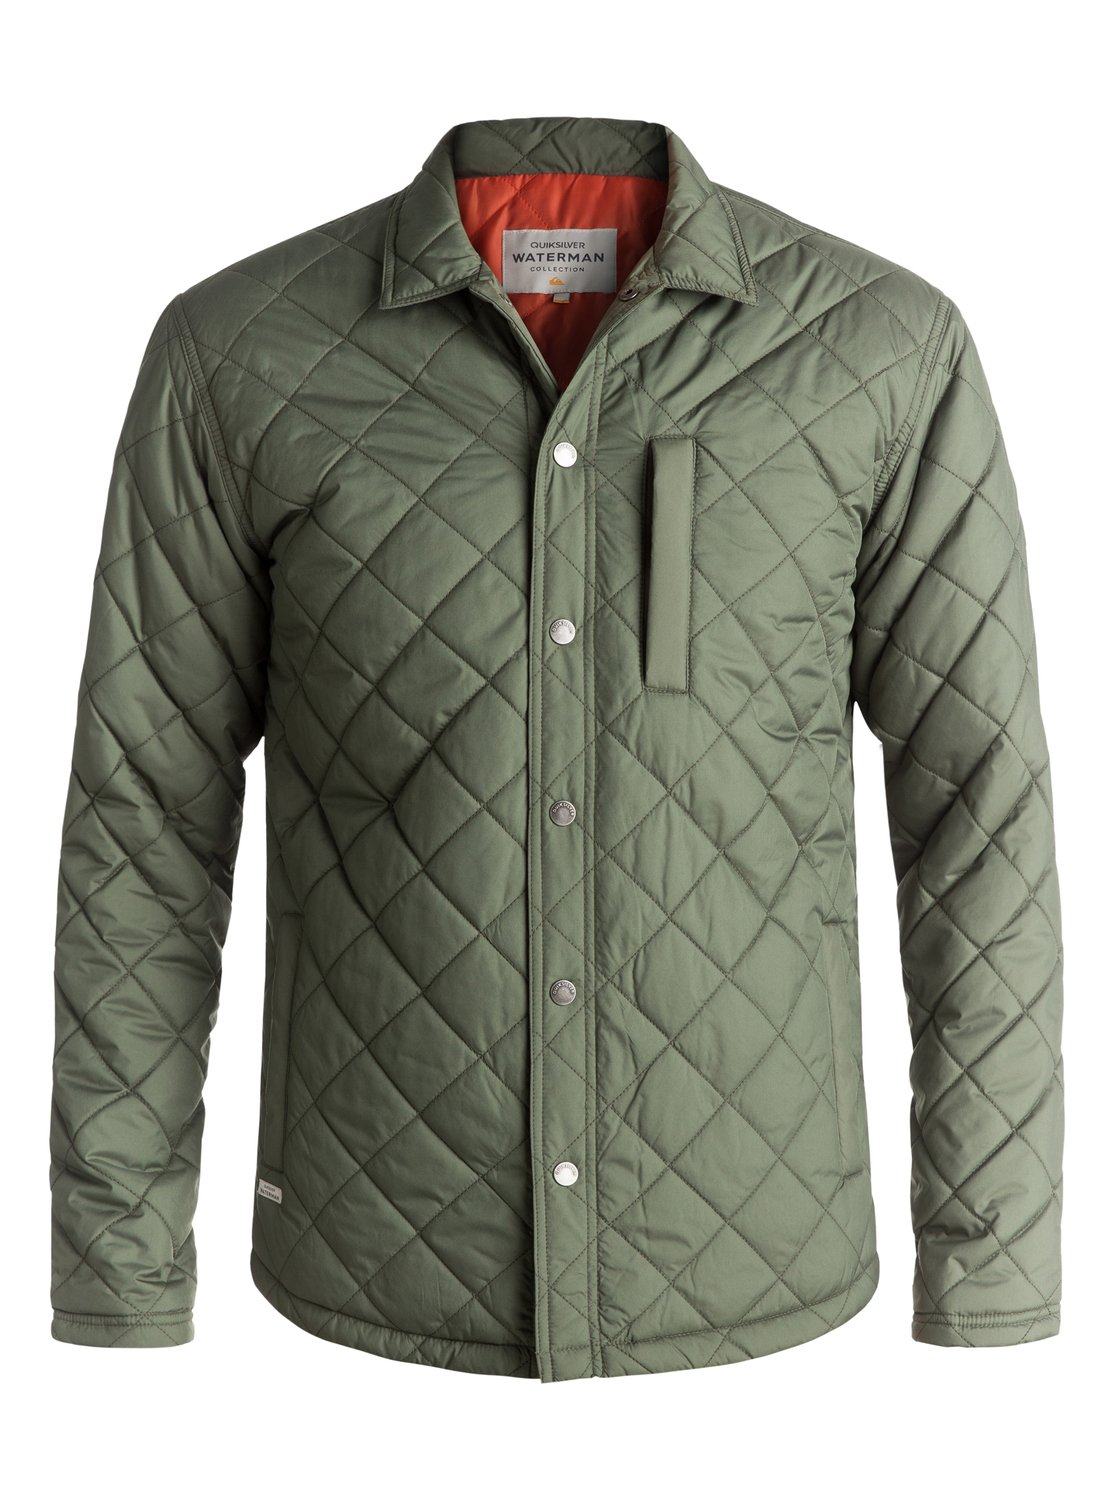 Quiksilver Waterman Puffed Up Water Repellent Quilted Shirt